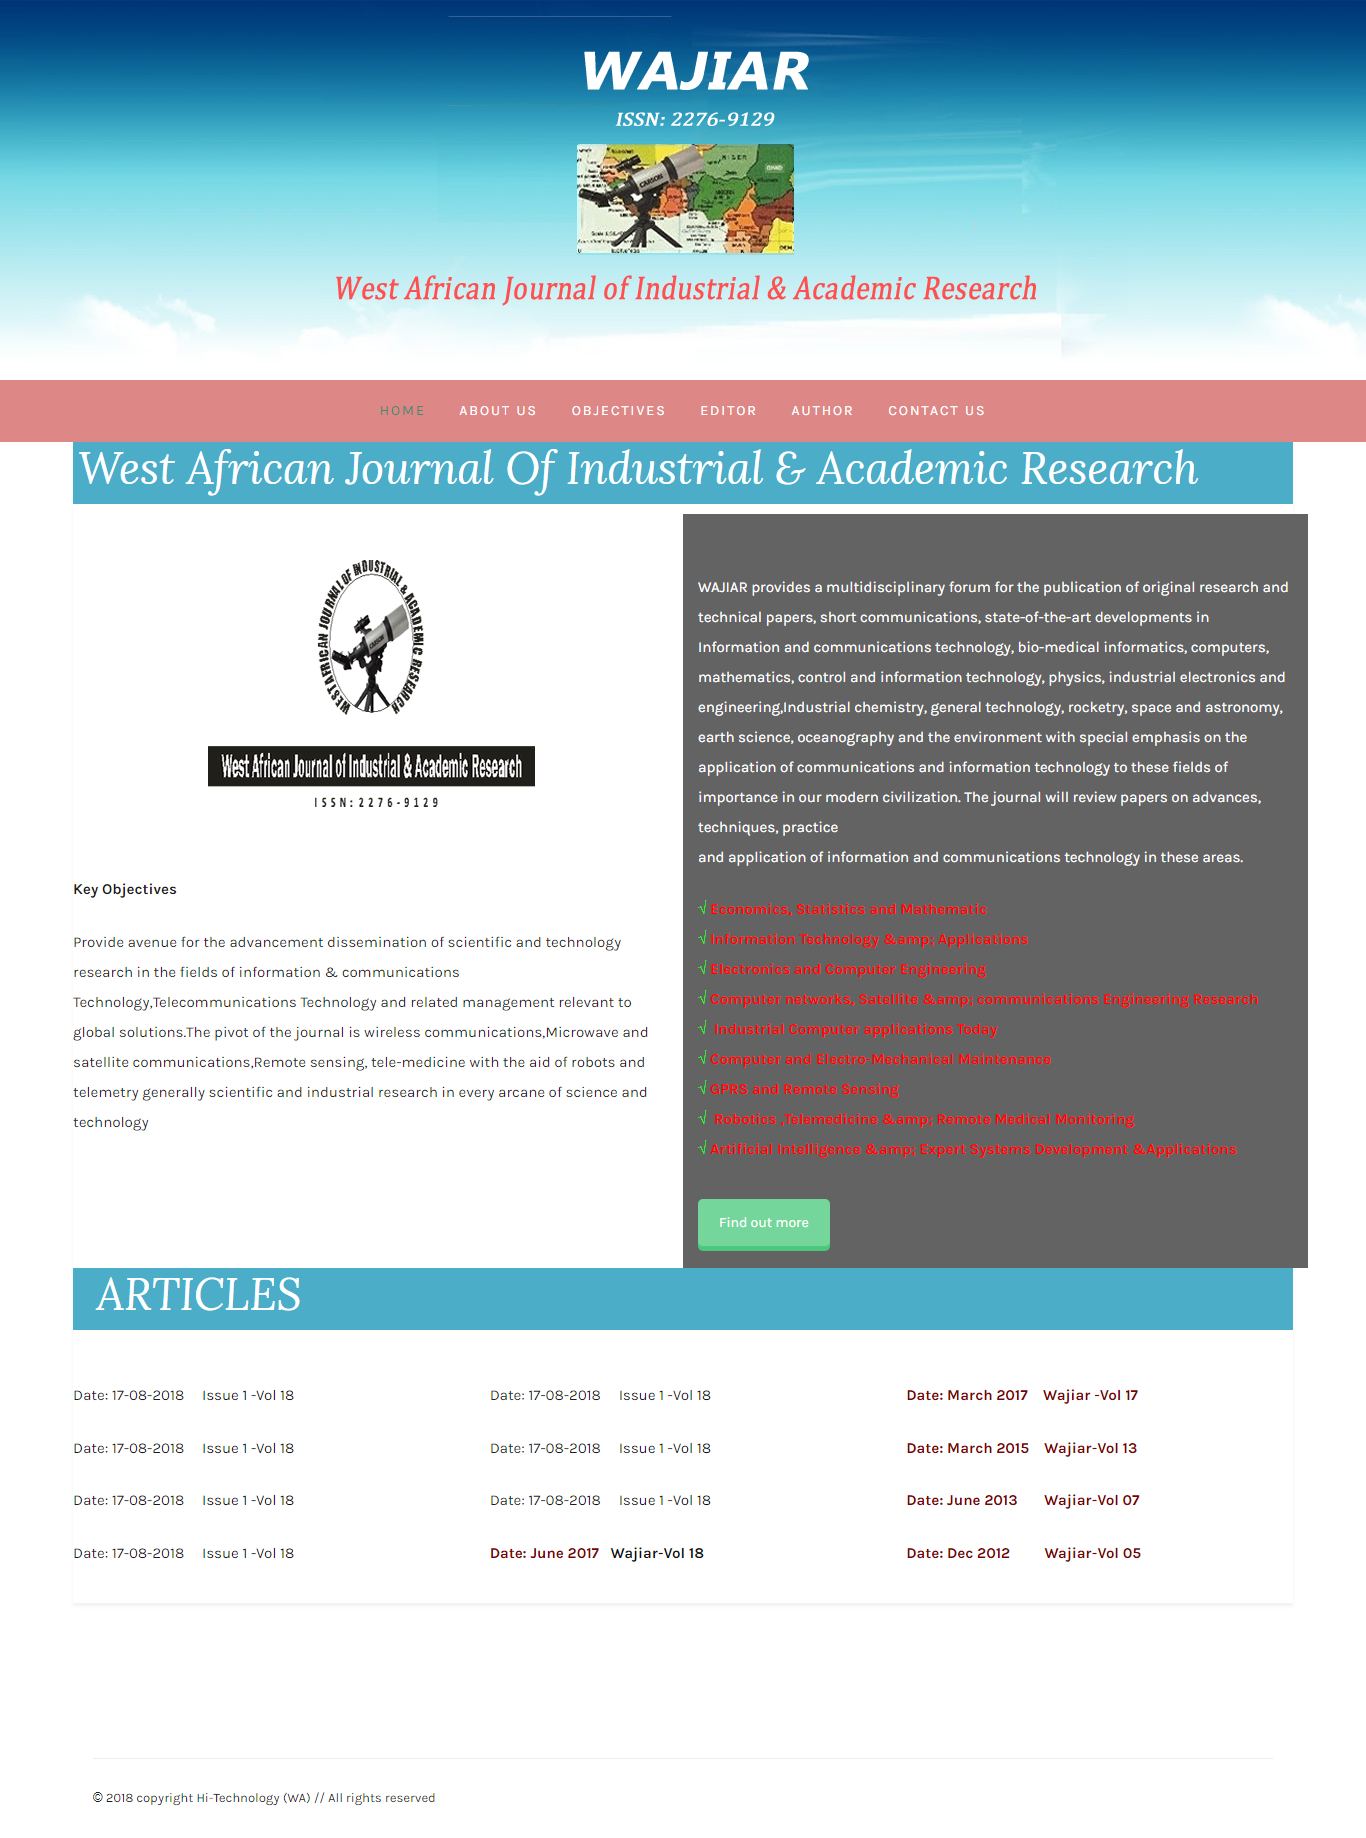 Wajiaredu-Web Design for publication of original research and technical papers